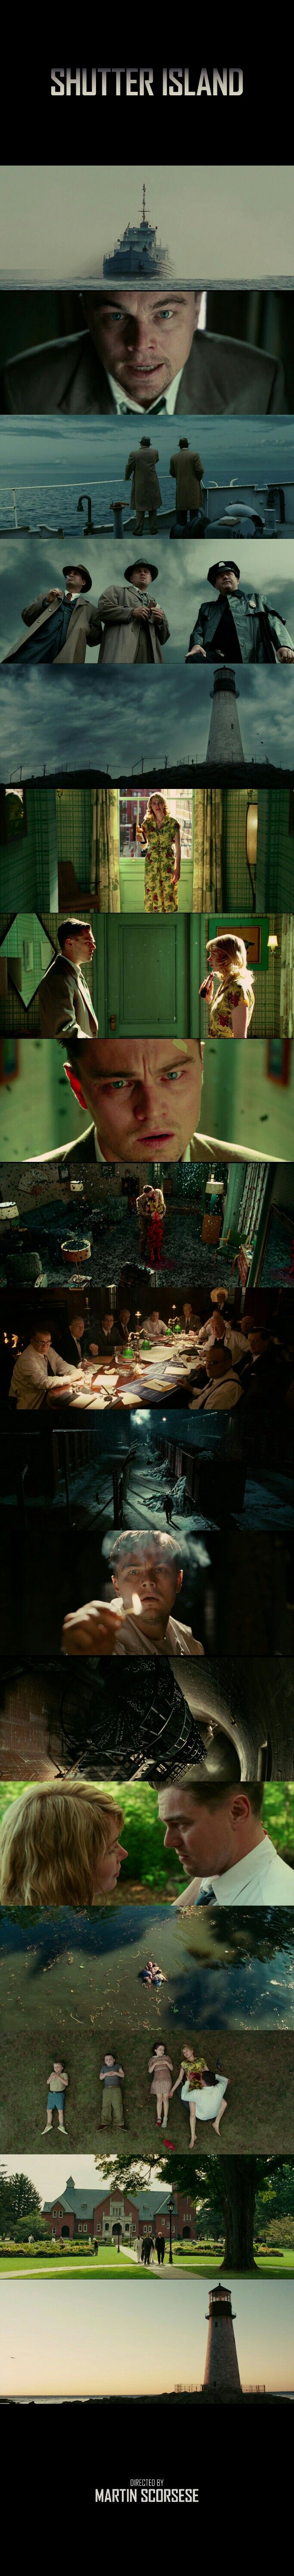 Shutter Island (2010) Directed by Martin Scorsese. Cinematography by Robert Richardson.